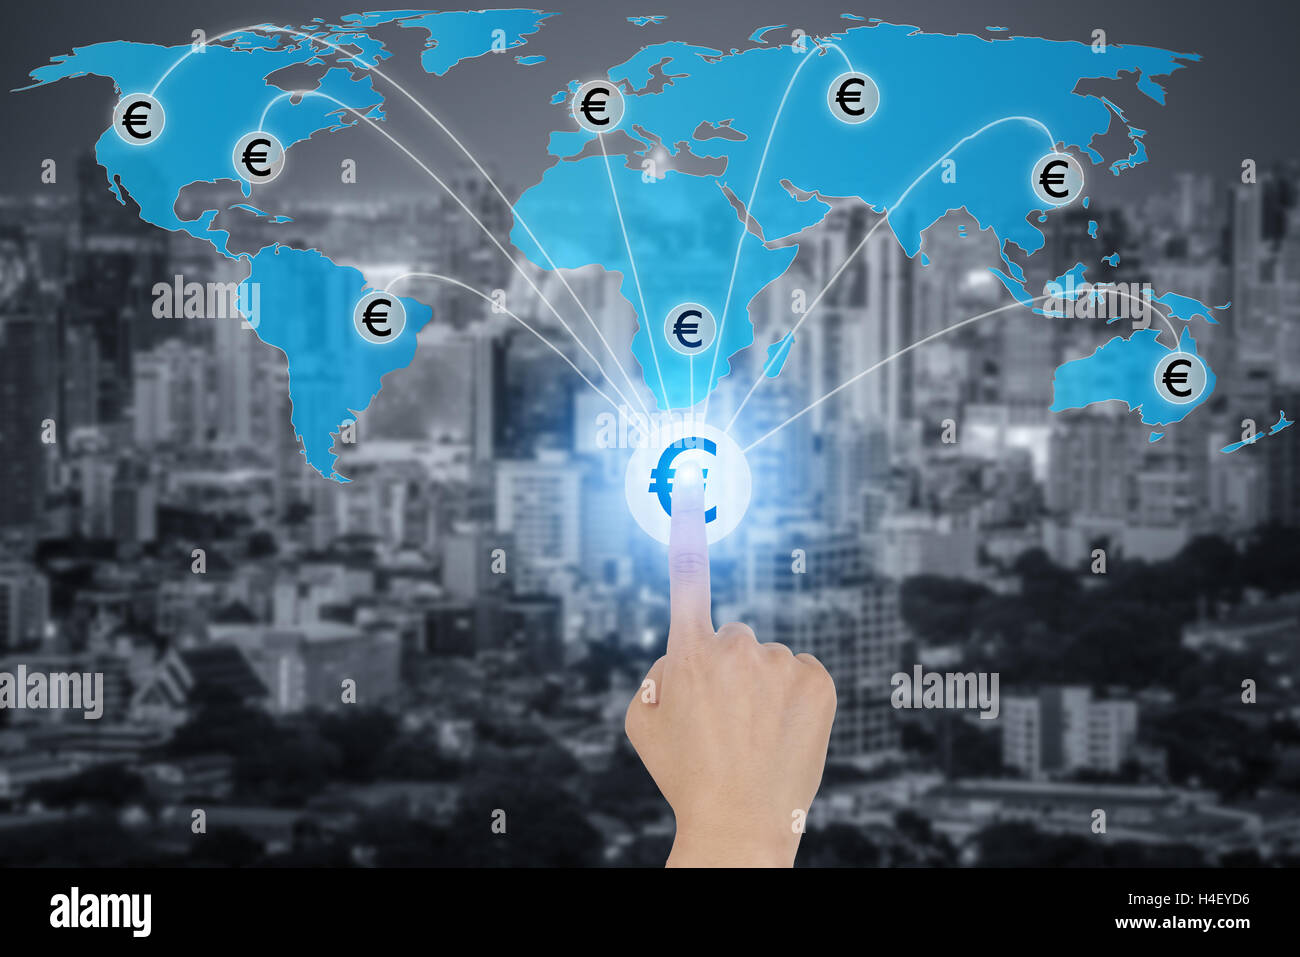 Touching button with Euro currency symbols connected in network, concept about global finance connection network. - Stock Image